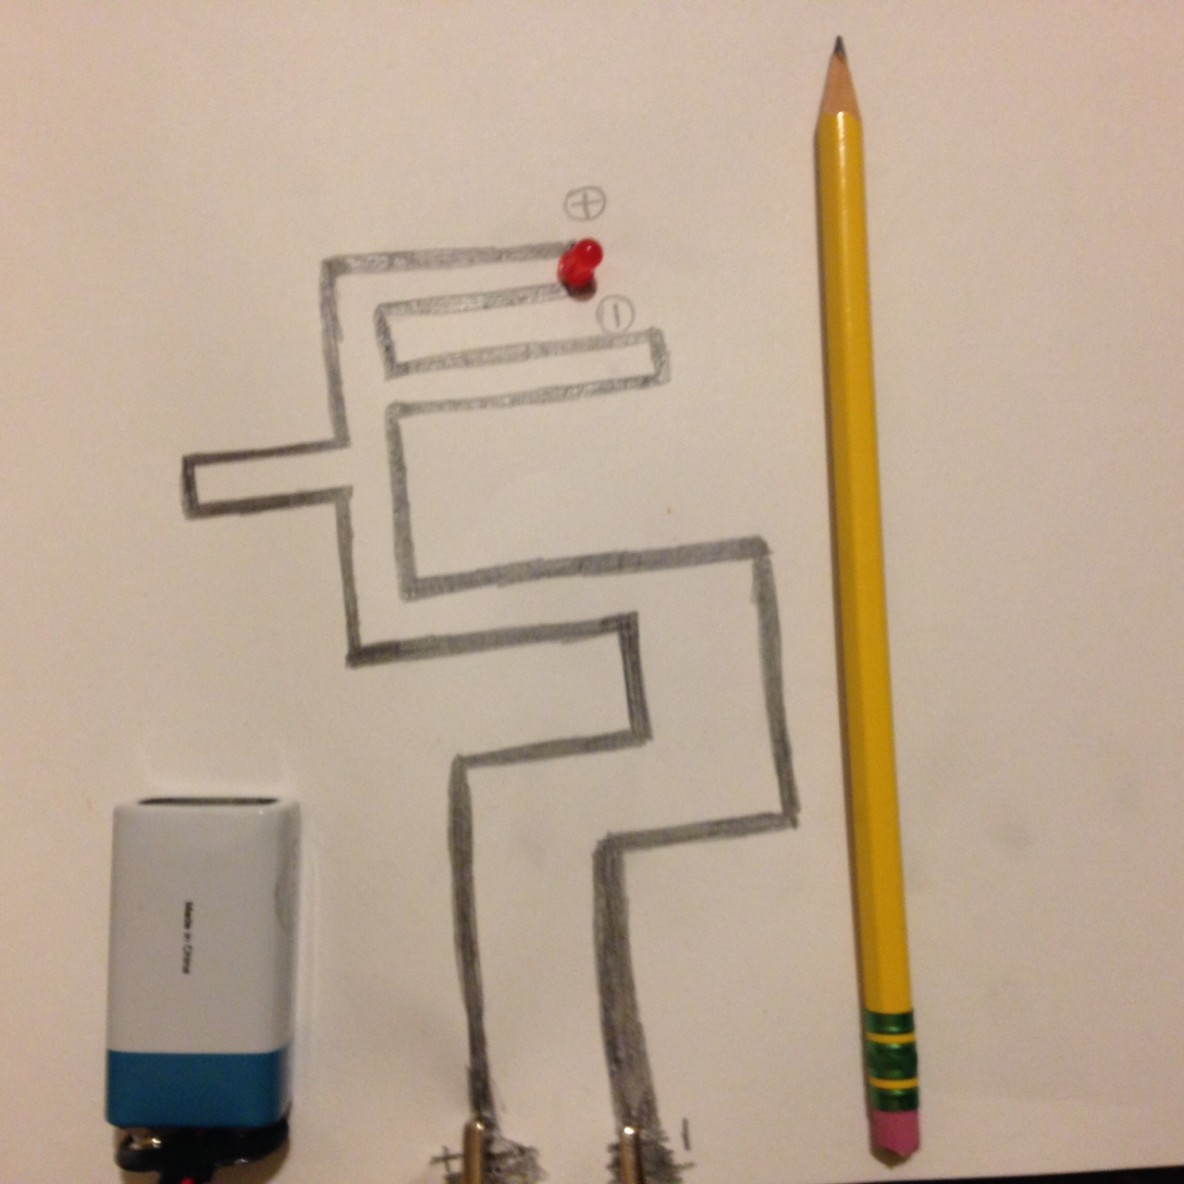 Drawing A Circuit